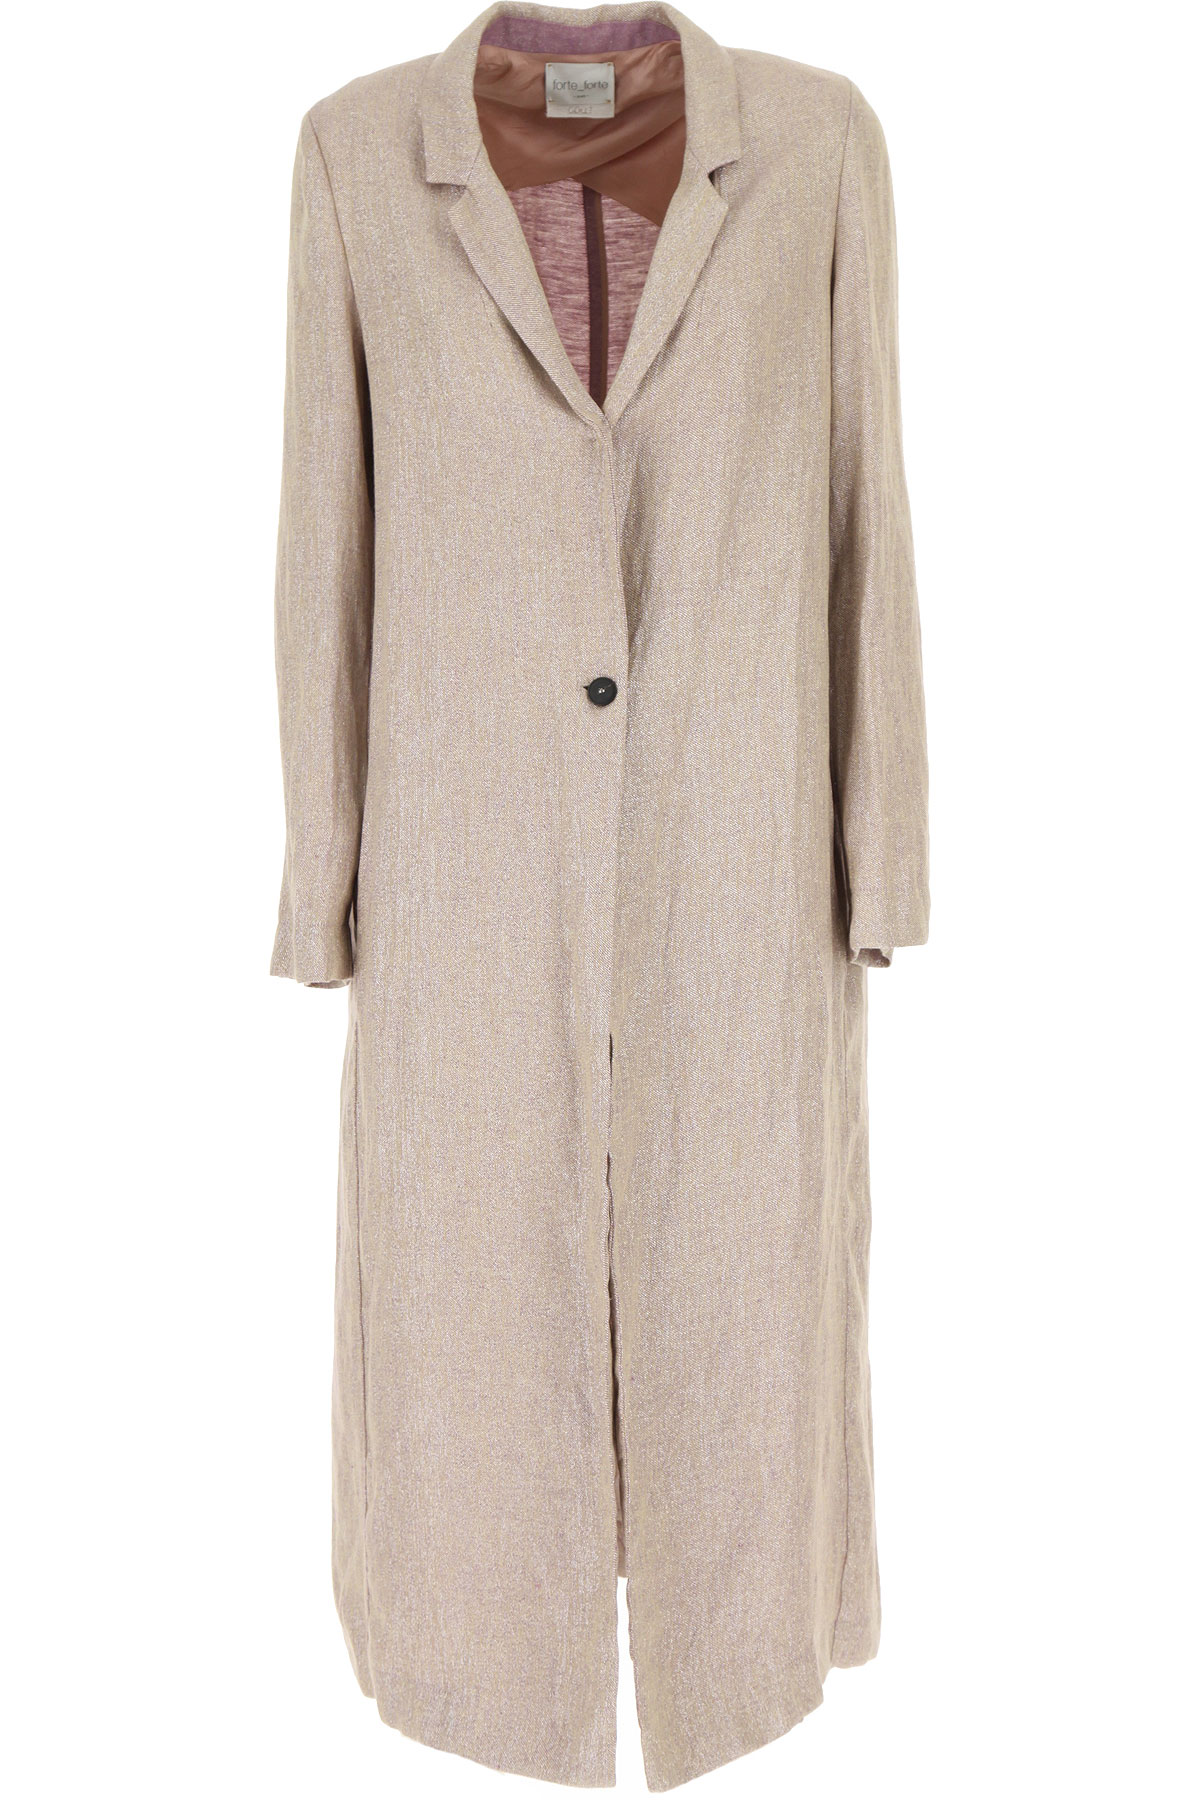 Forte Forte Women's Coat On Sale, Sunrise, linen, 2019, 1 - S - IT 40 2 - M - IT 42